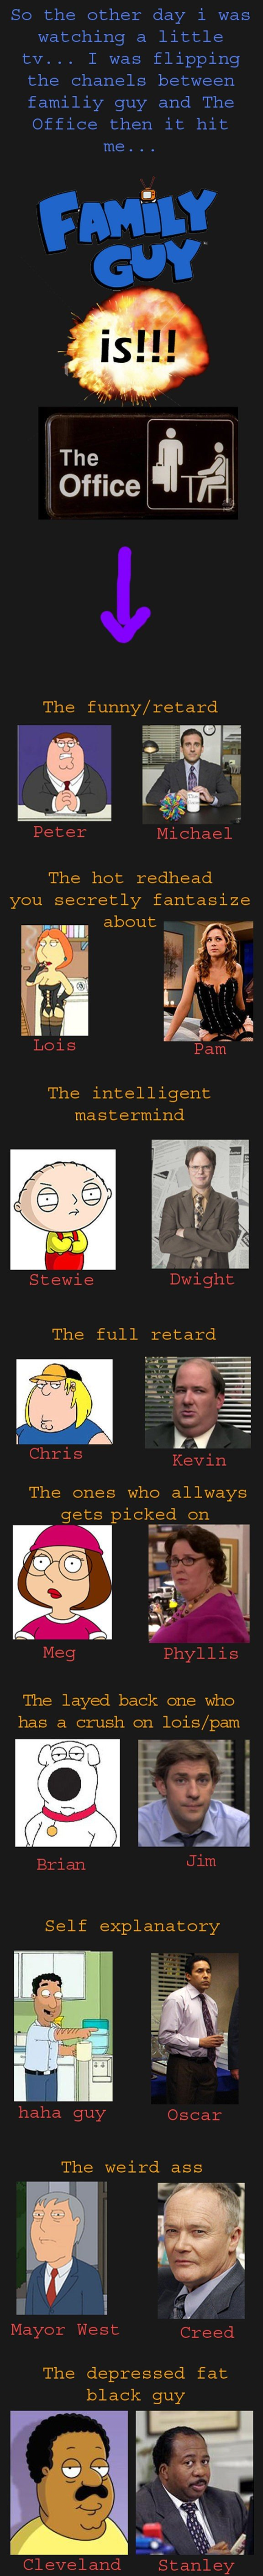 fgoffice - family guy = the office